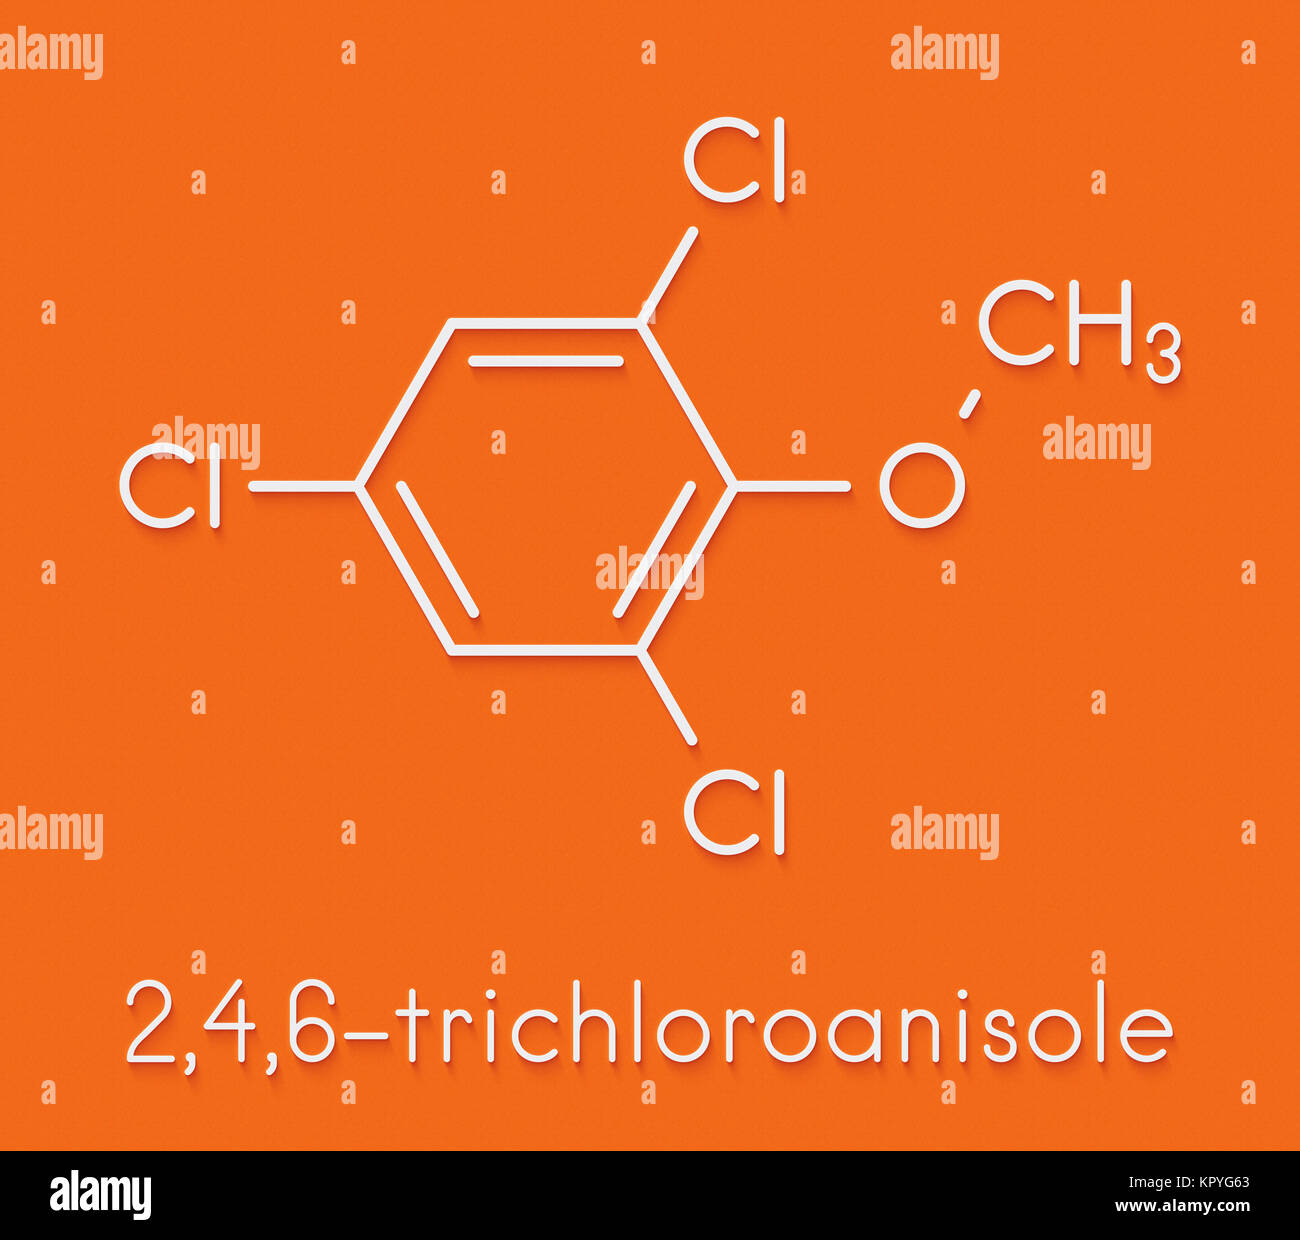 Trichloroanisole (TCA) cork taint molecule. Produced by fungi and bacteria, responsible for cork taint in bottled - Stock Image